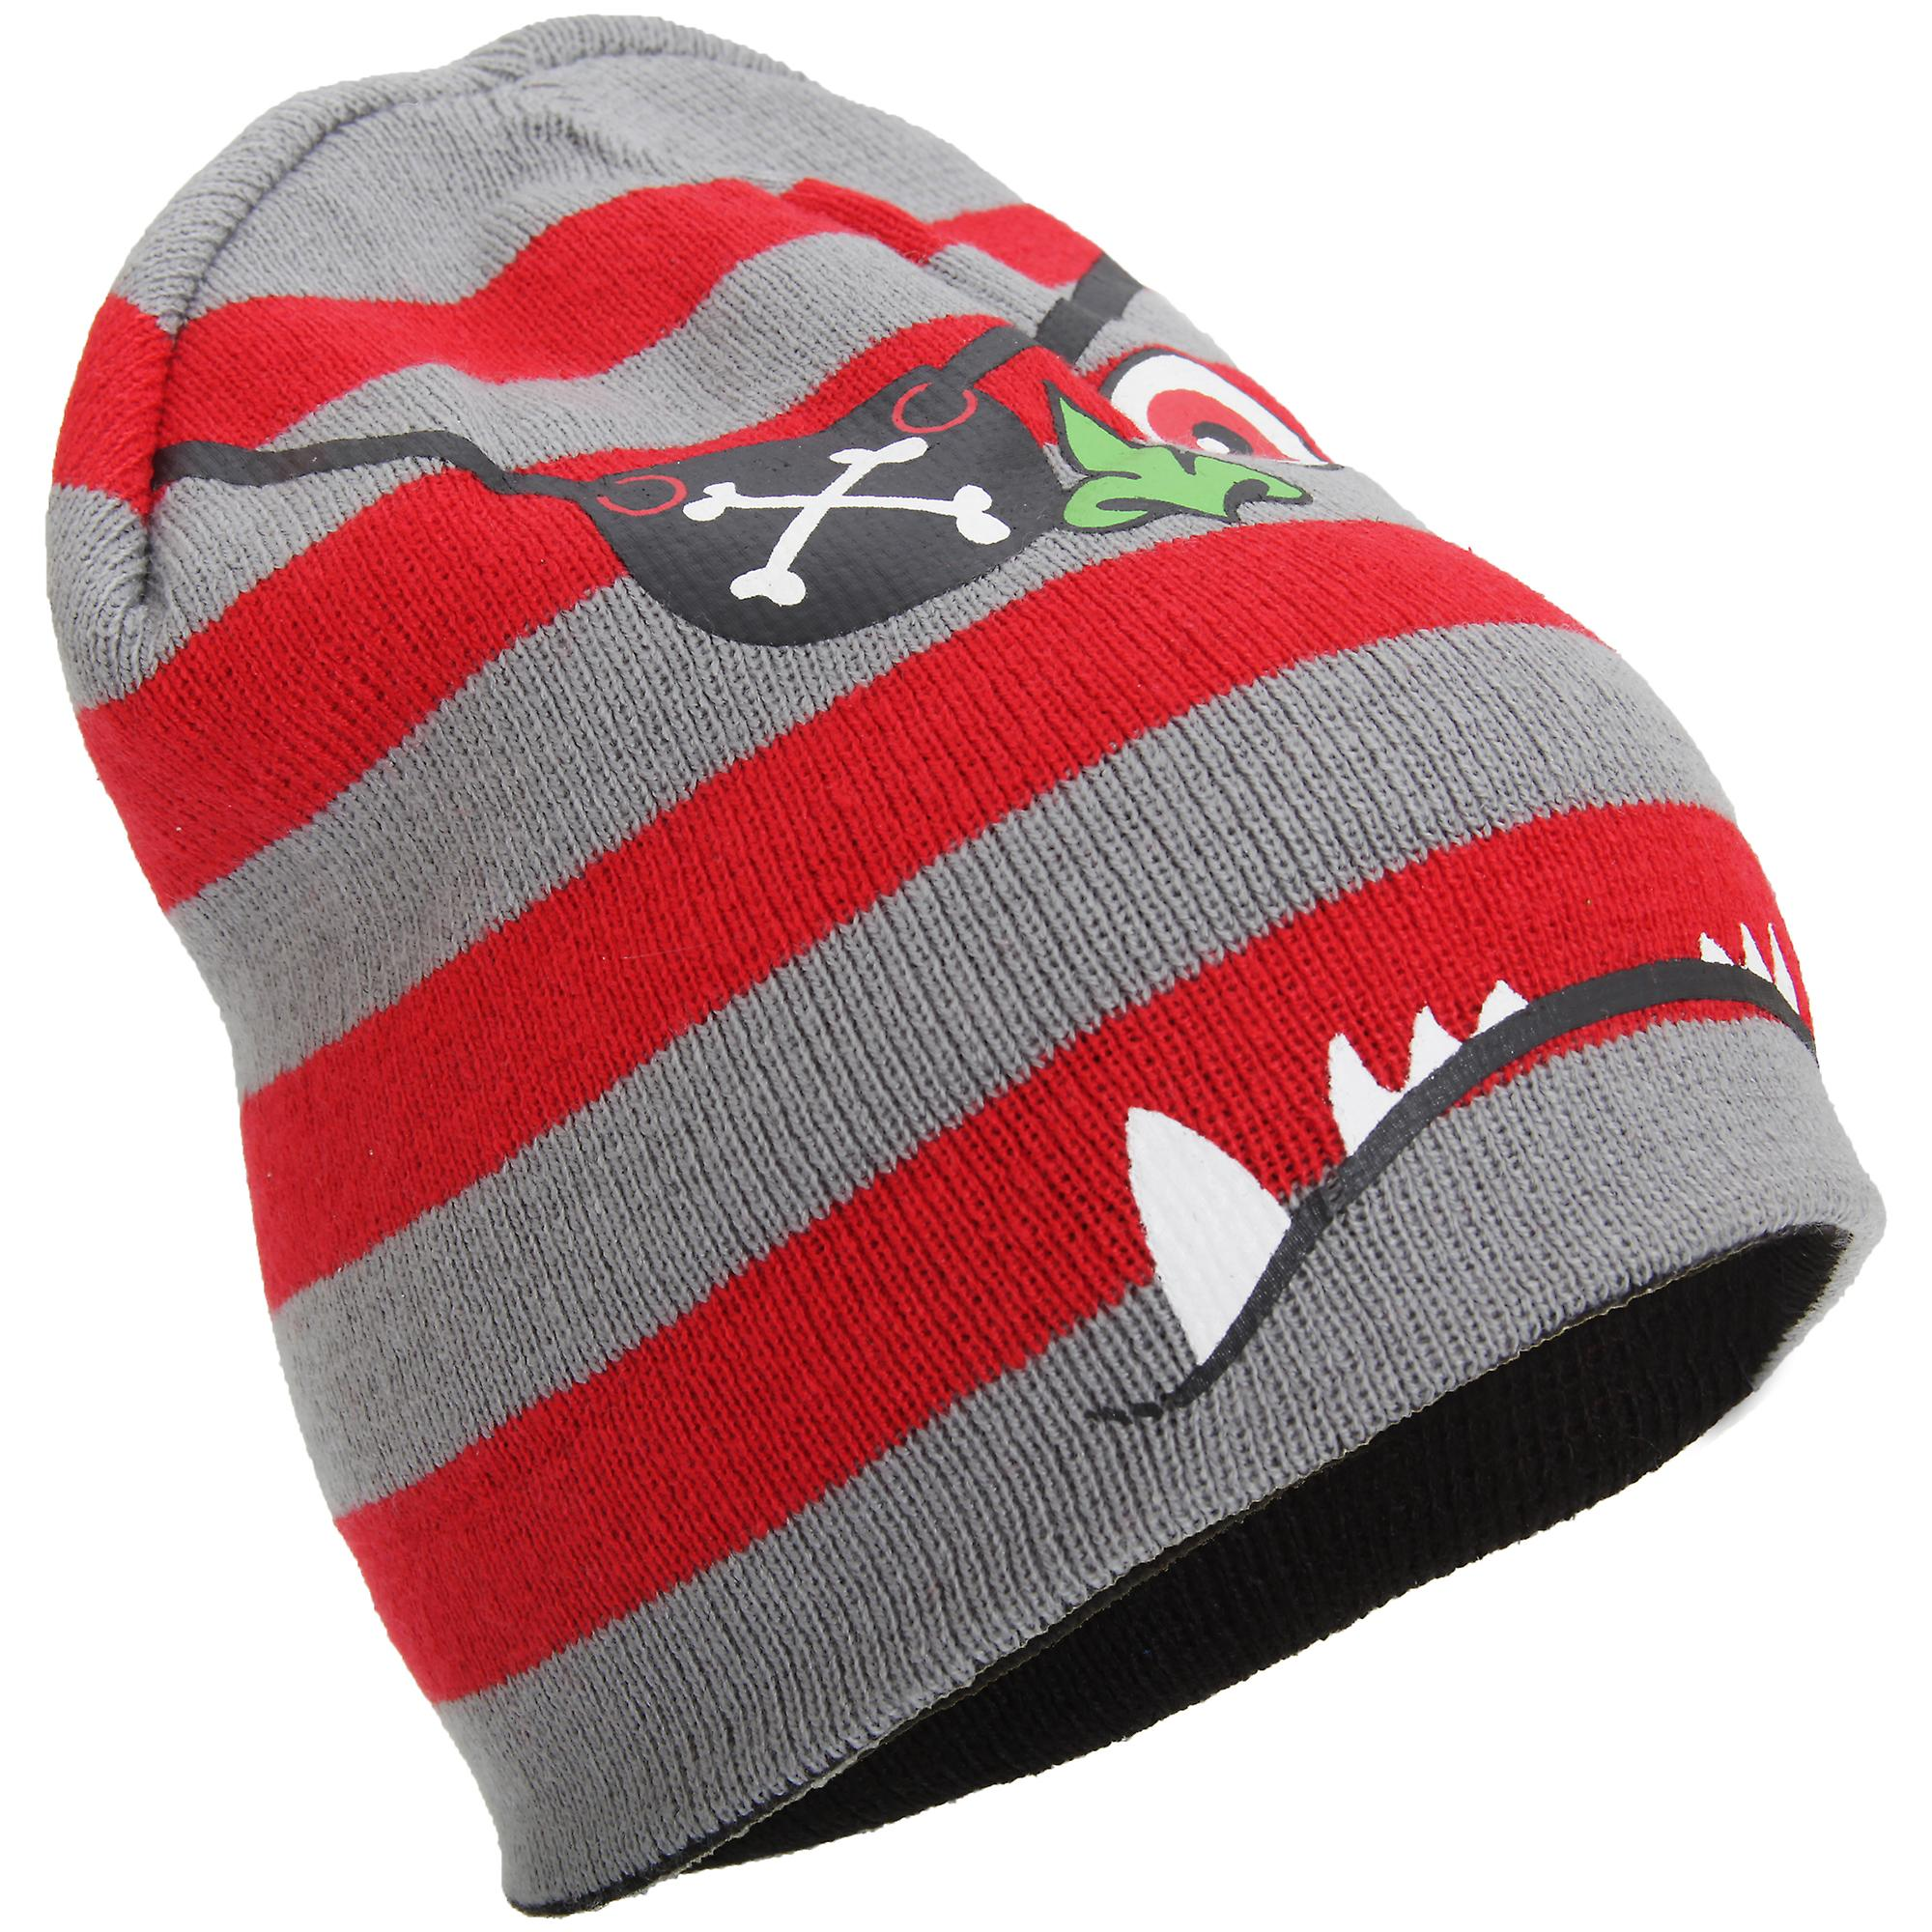 Childrens Boys Knitted 4-In-1 Reversible Monster Design Beanie Hat ... a8945ef092c